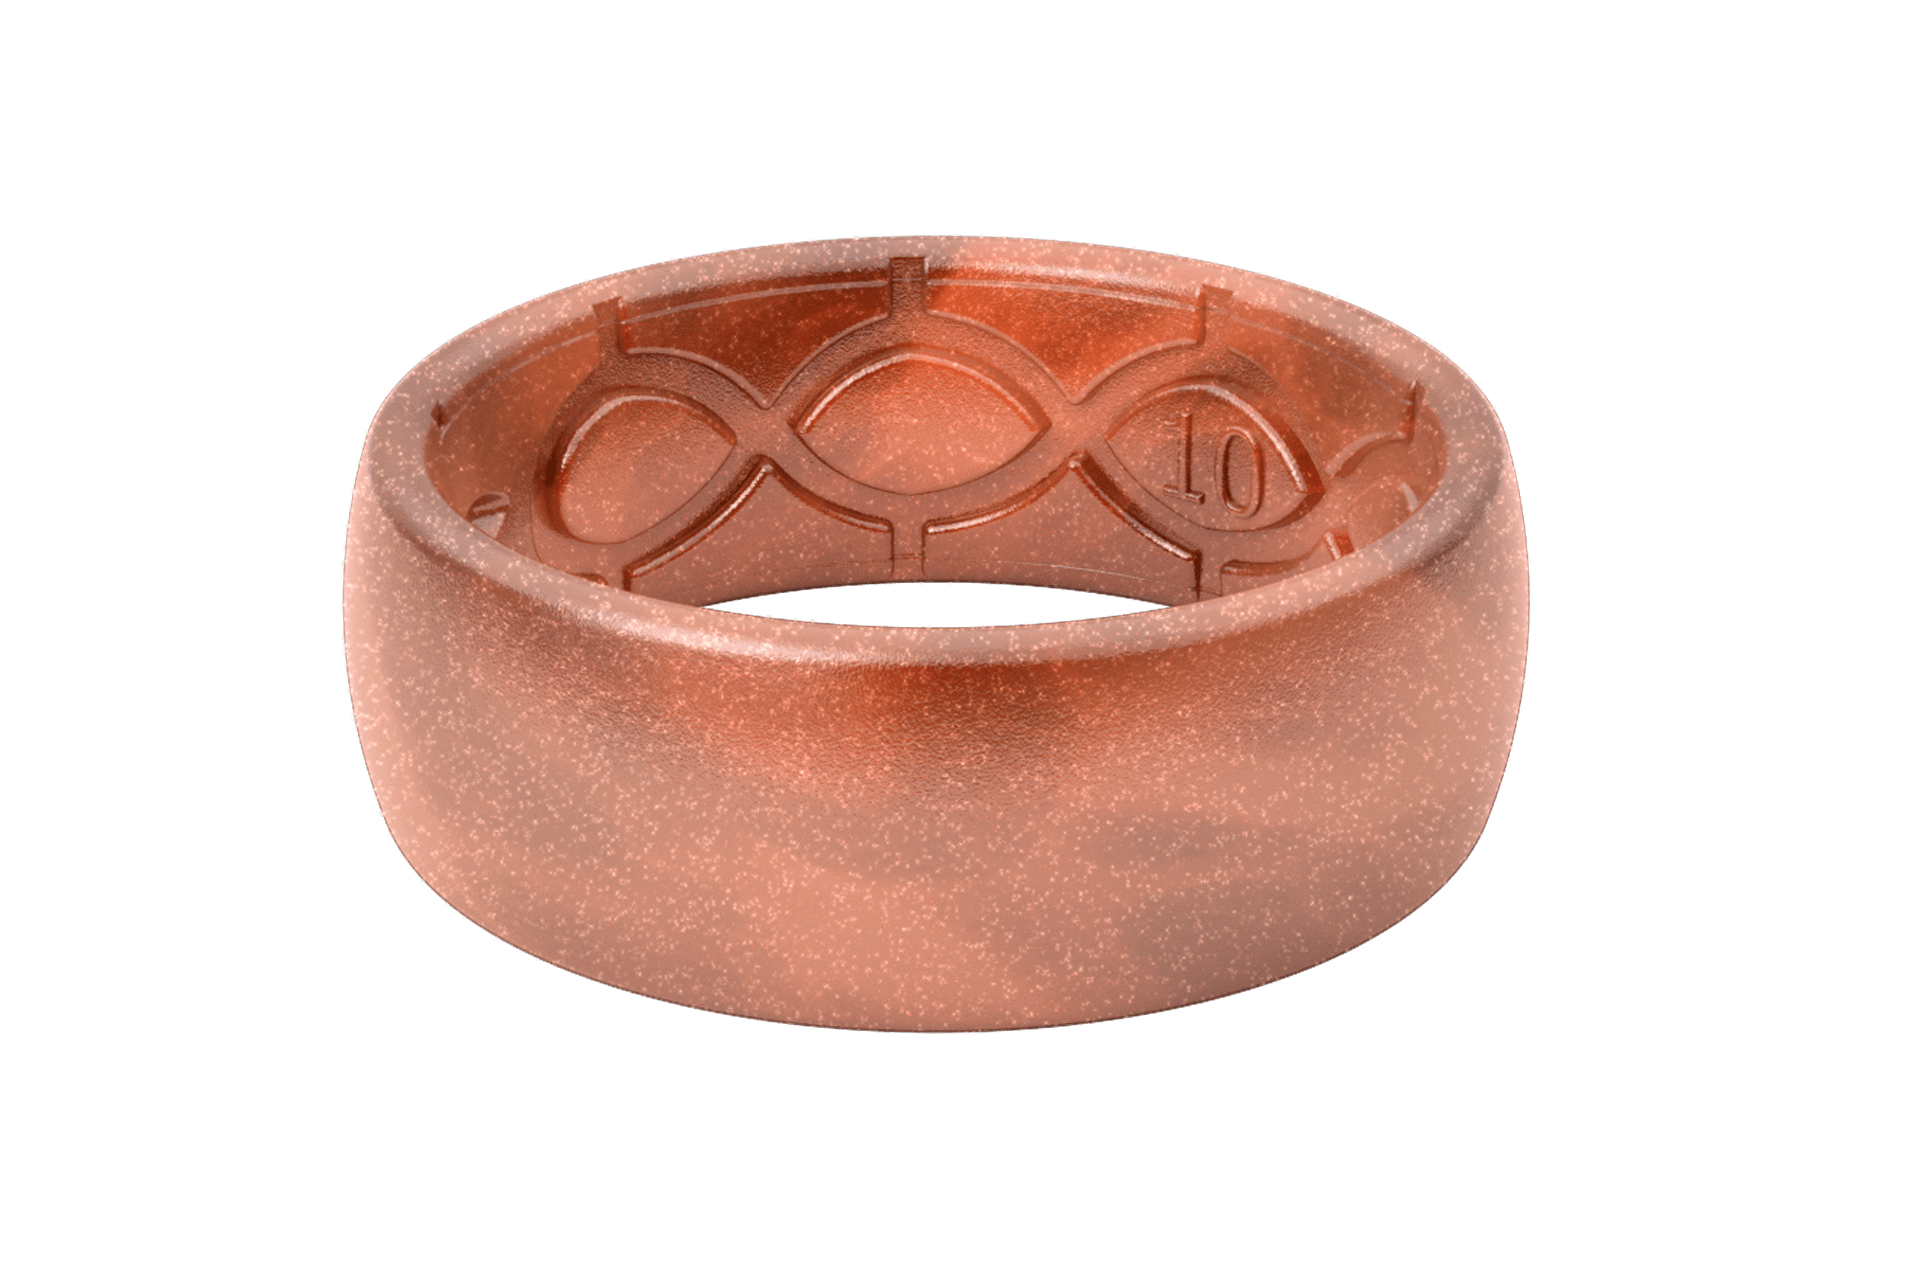 Original Solid Copper - Groove Life Silicone Wedding Rings